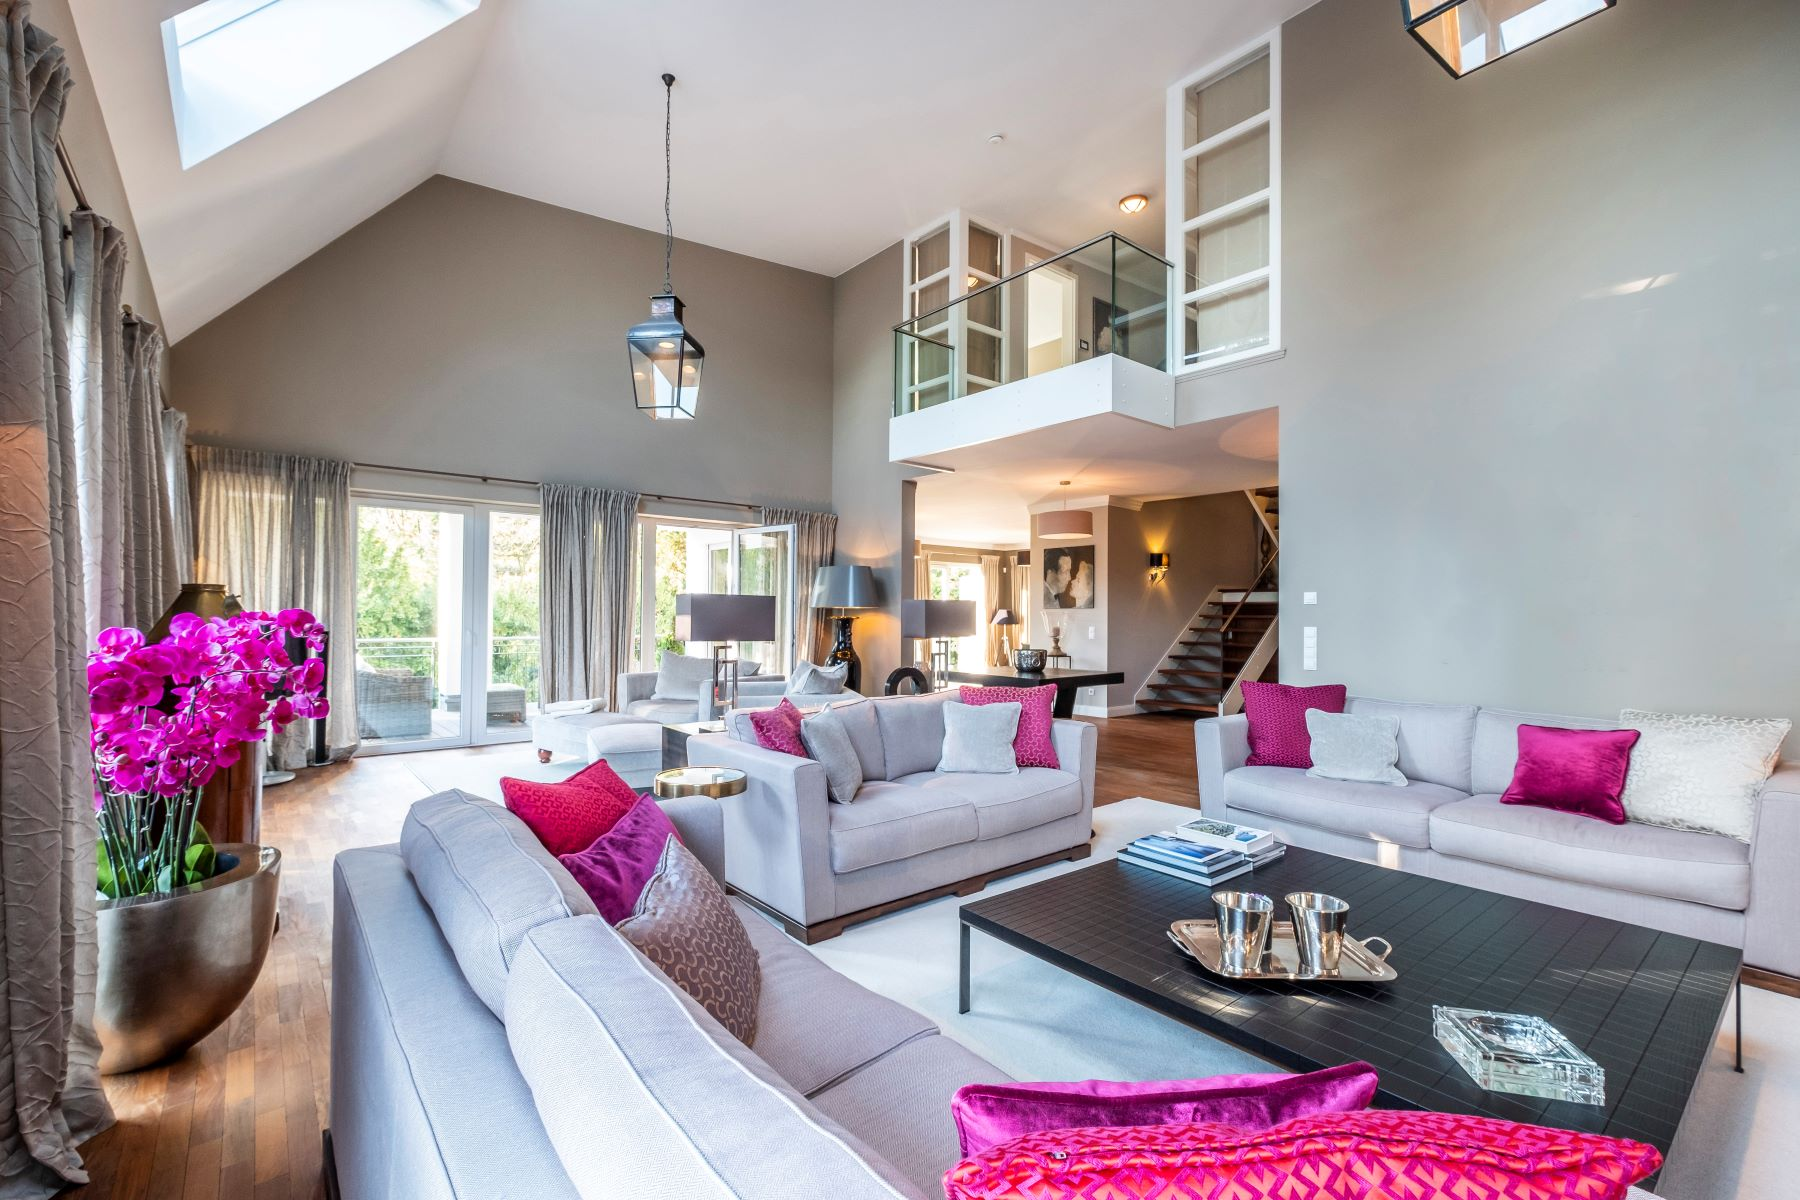 Single Family Homes for Sale at Exclusive living at the boarder of river Elbe Hamburg, Hamburg 22609 Germany